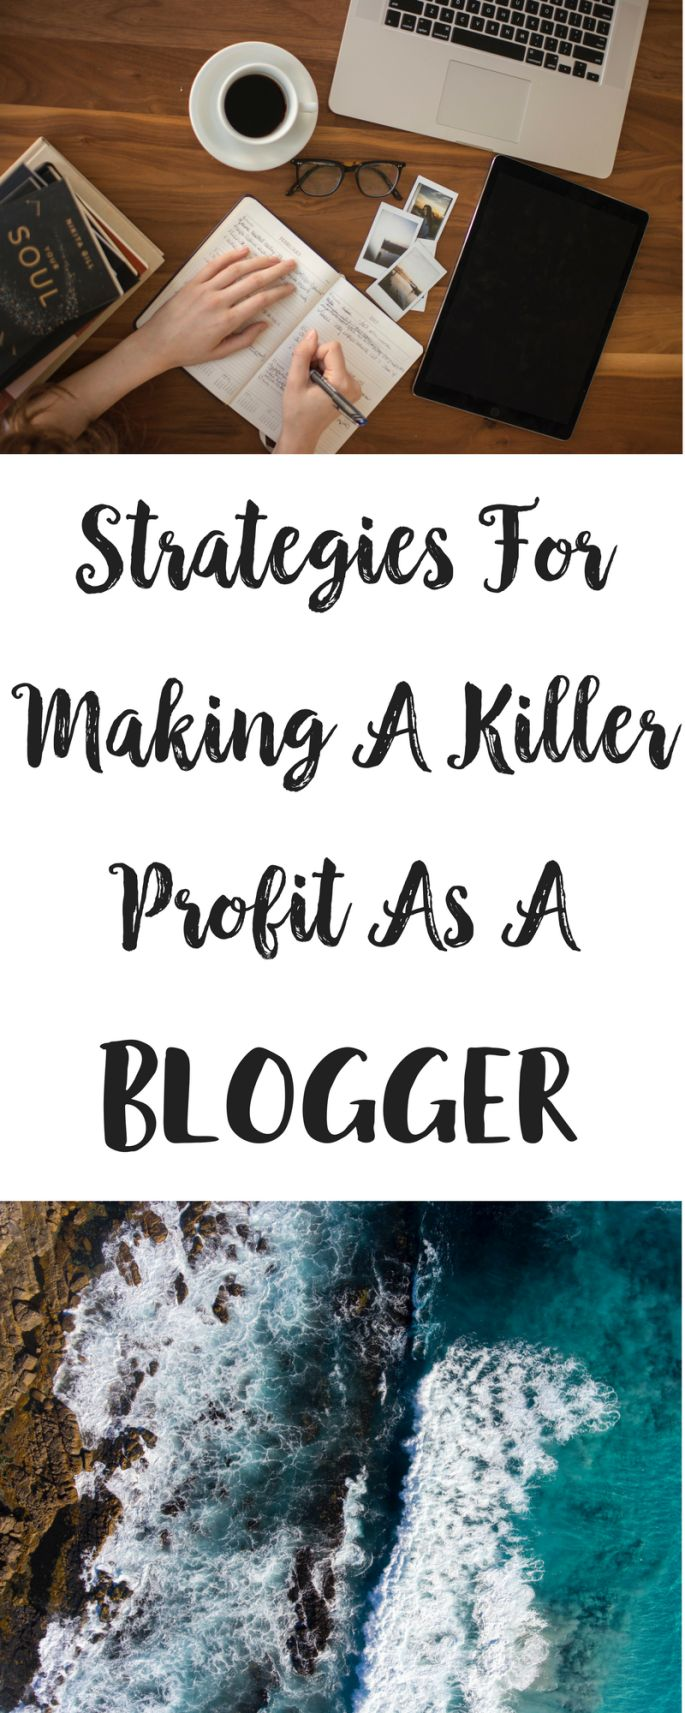 Strategies For Making A Killer Profit As A Blogger